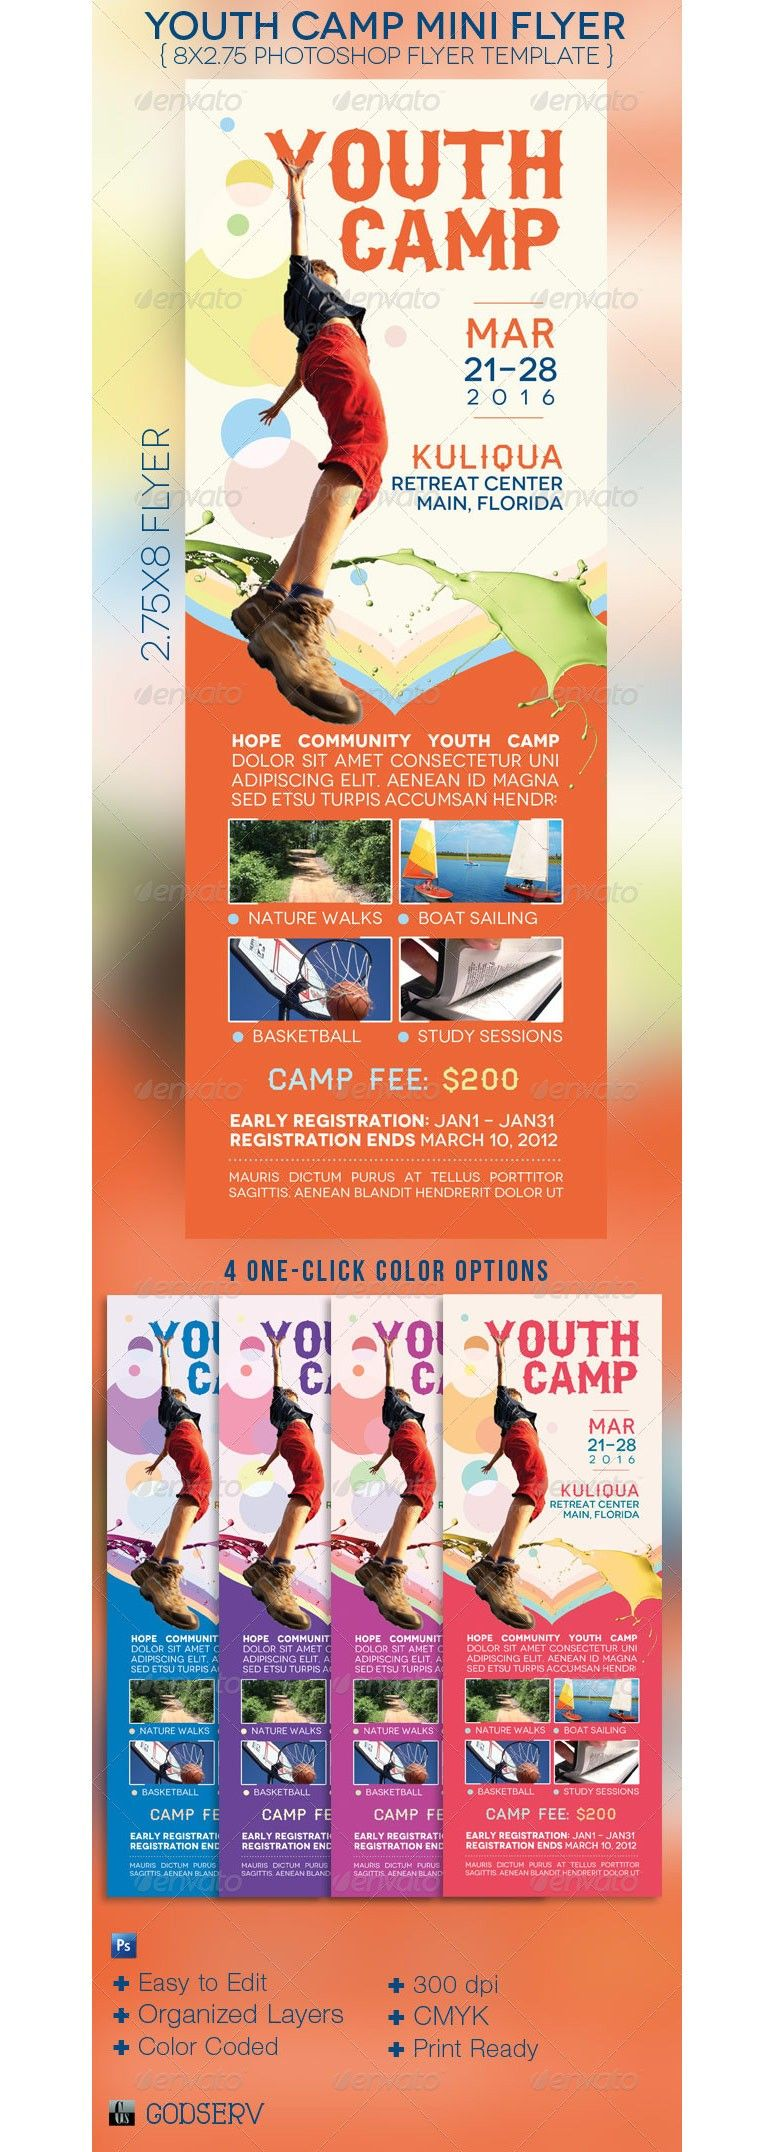 youth camp mini flyer template gd layout inspiration flyer